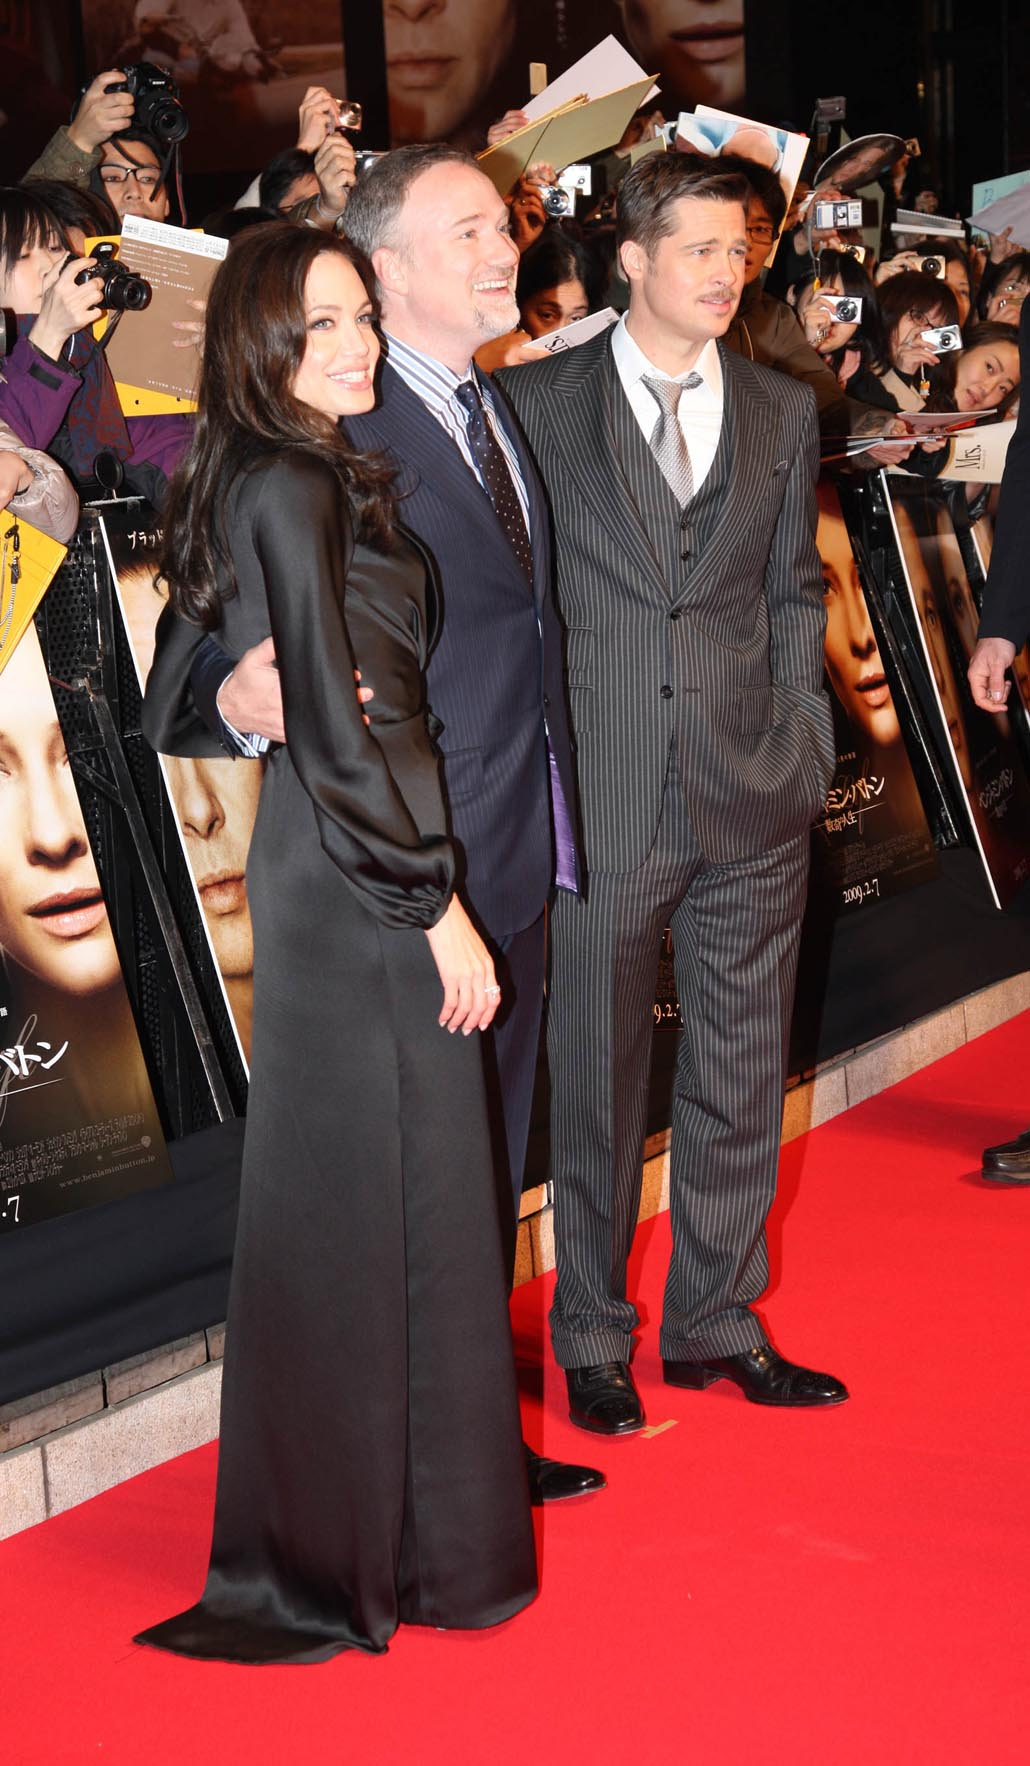 fans go wild for Brangelina at the Tokyo Premiere of 'The Curious Case ...